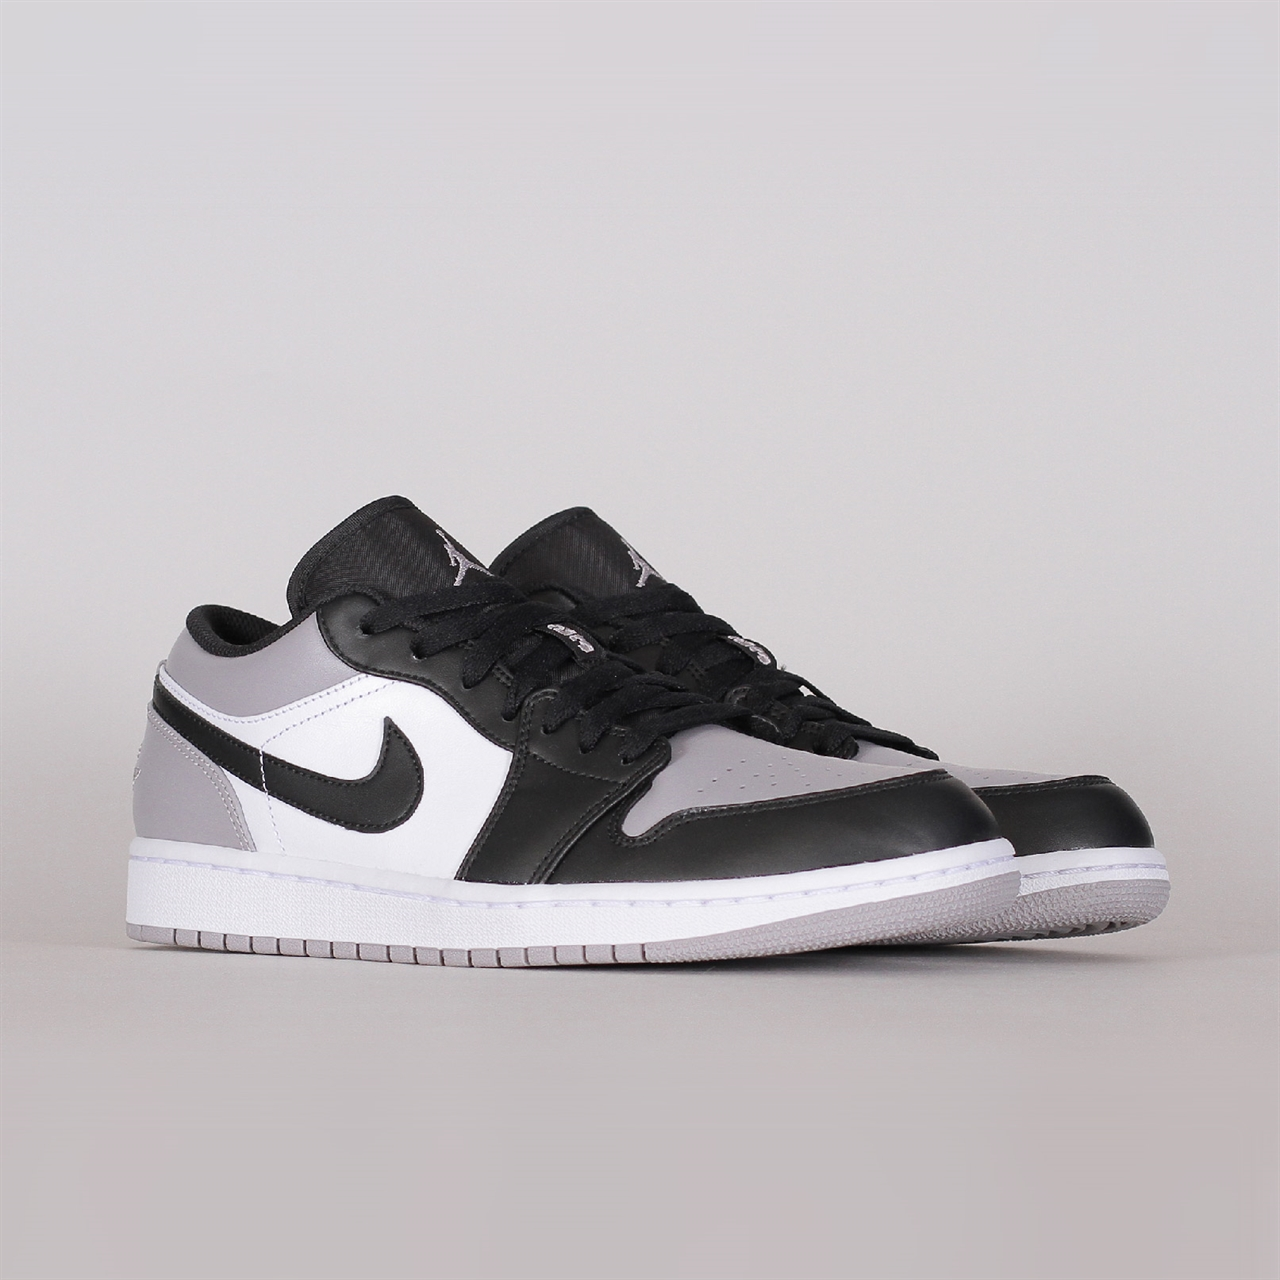 d131da30a50 Nike Air Jordan 1 Low (553558-110) - Shelta